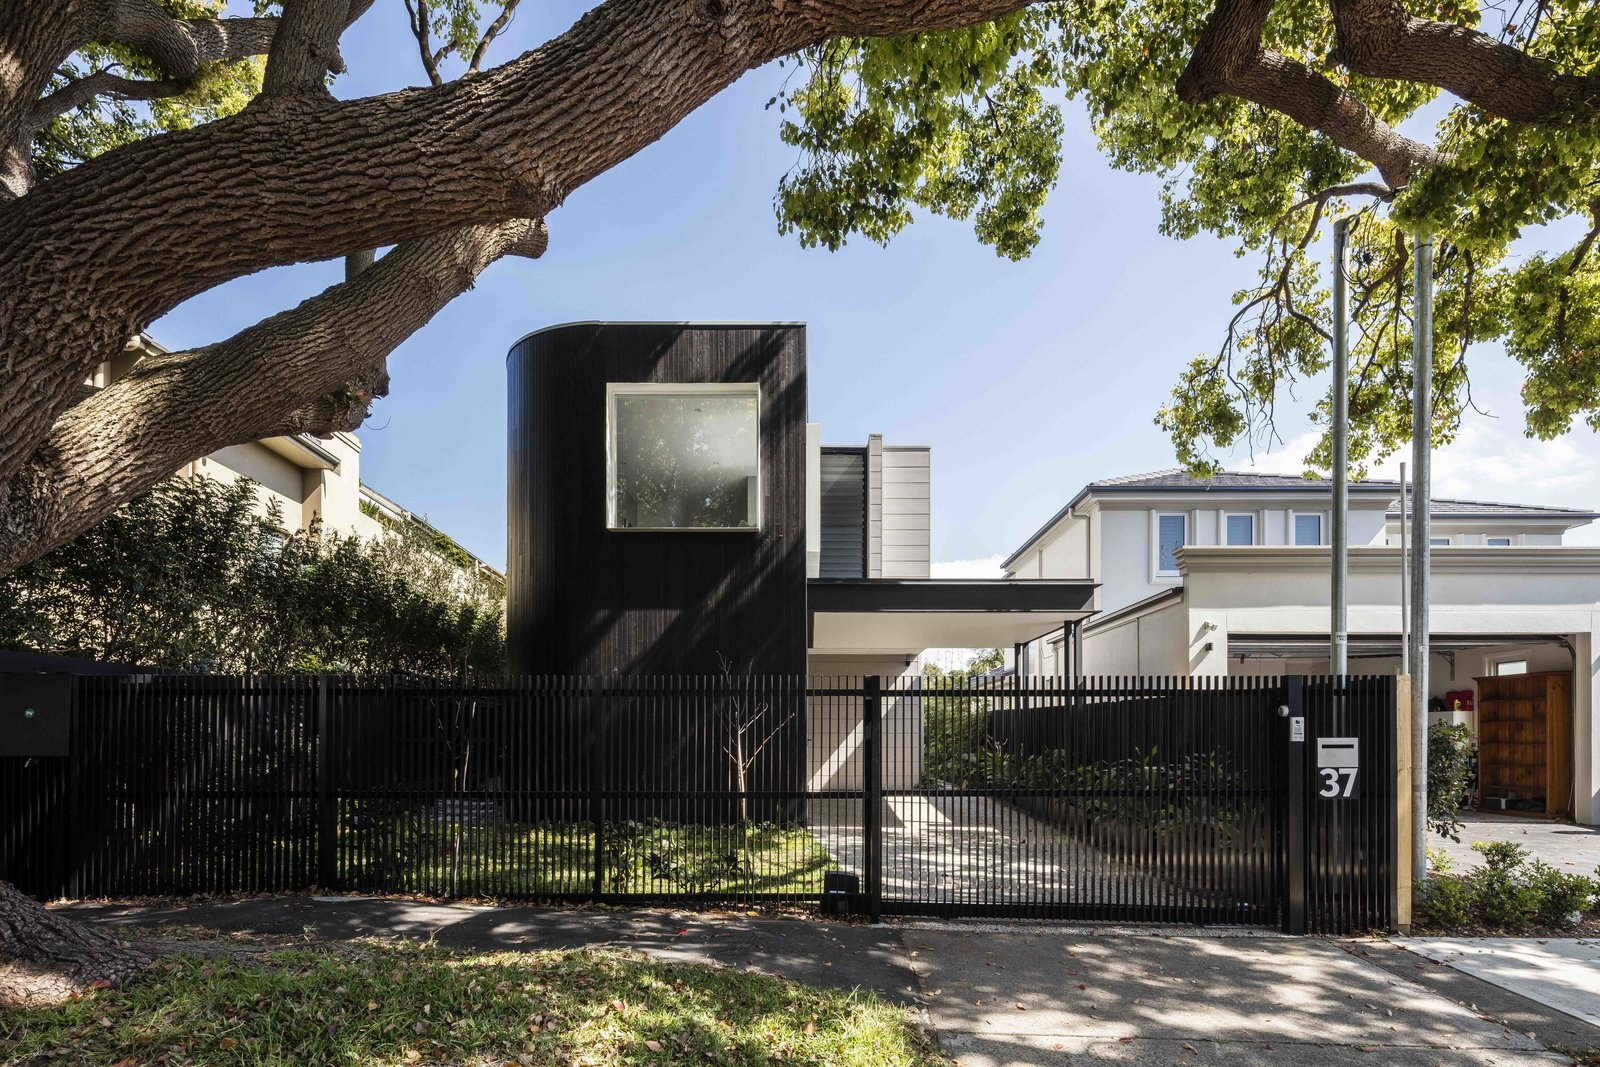 Outdoor, Front Yard, Trees, Grass, Vertical Fences, Wall, and Metal Fences, Wall  Photos from The Rose Bay House